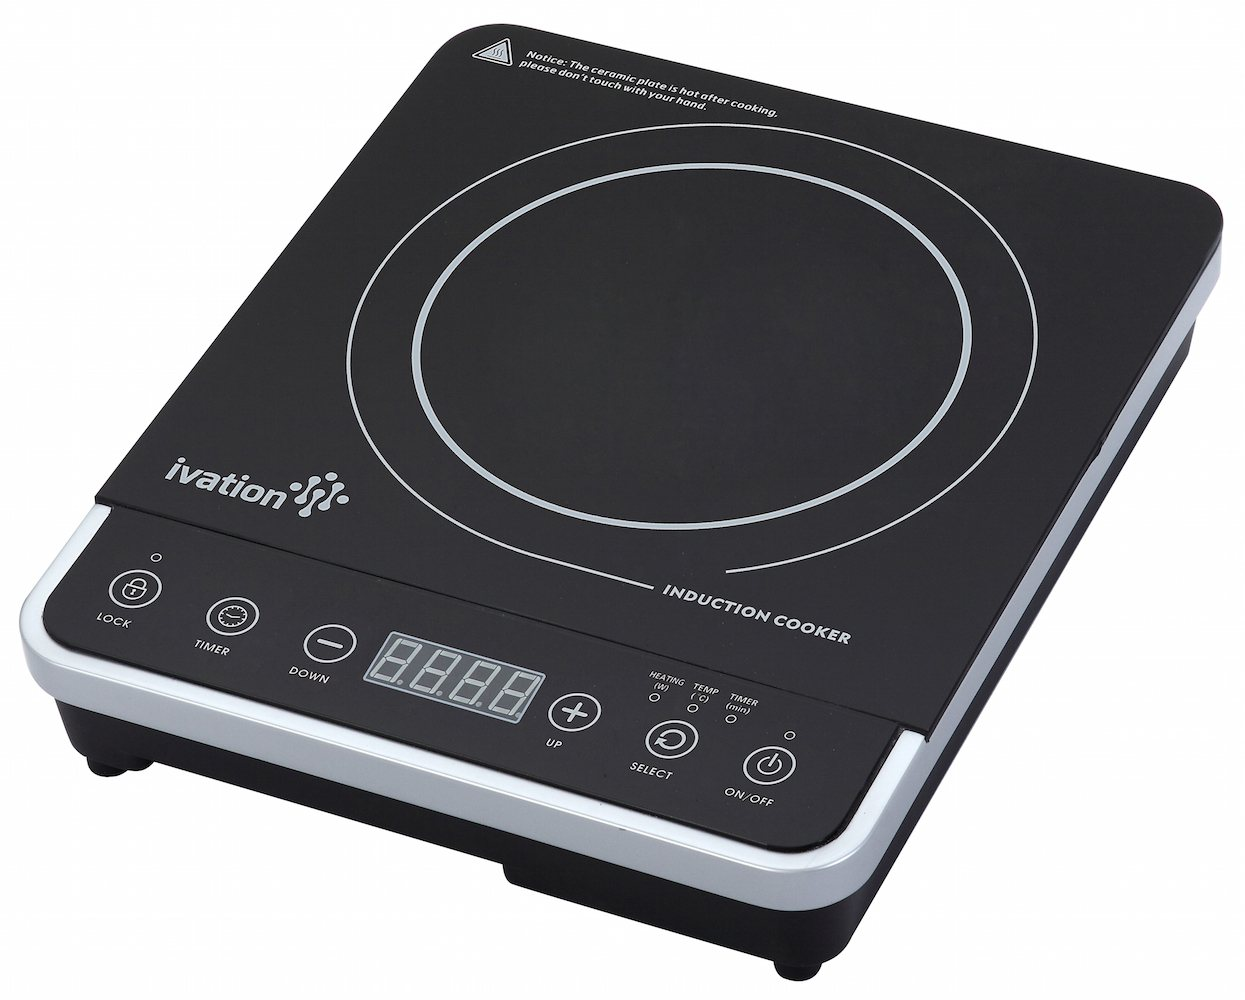 Induction Cooktop Ivation 1800 Watt Portable Induction Countertop Cooktop